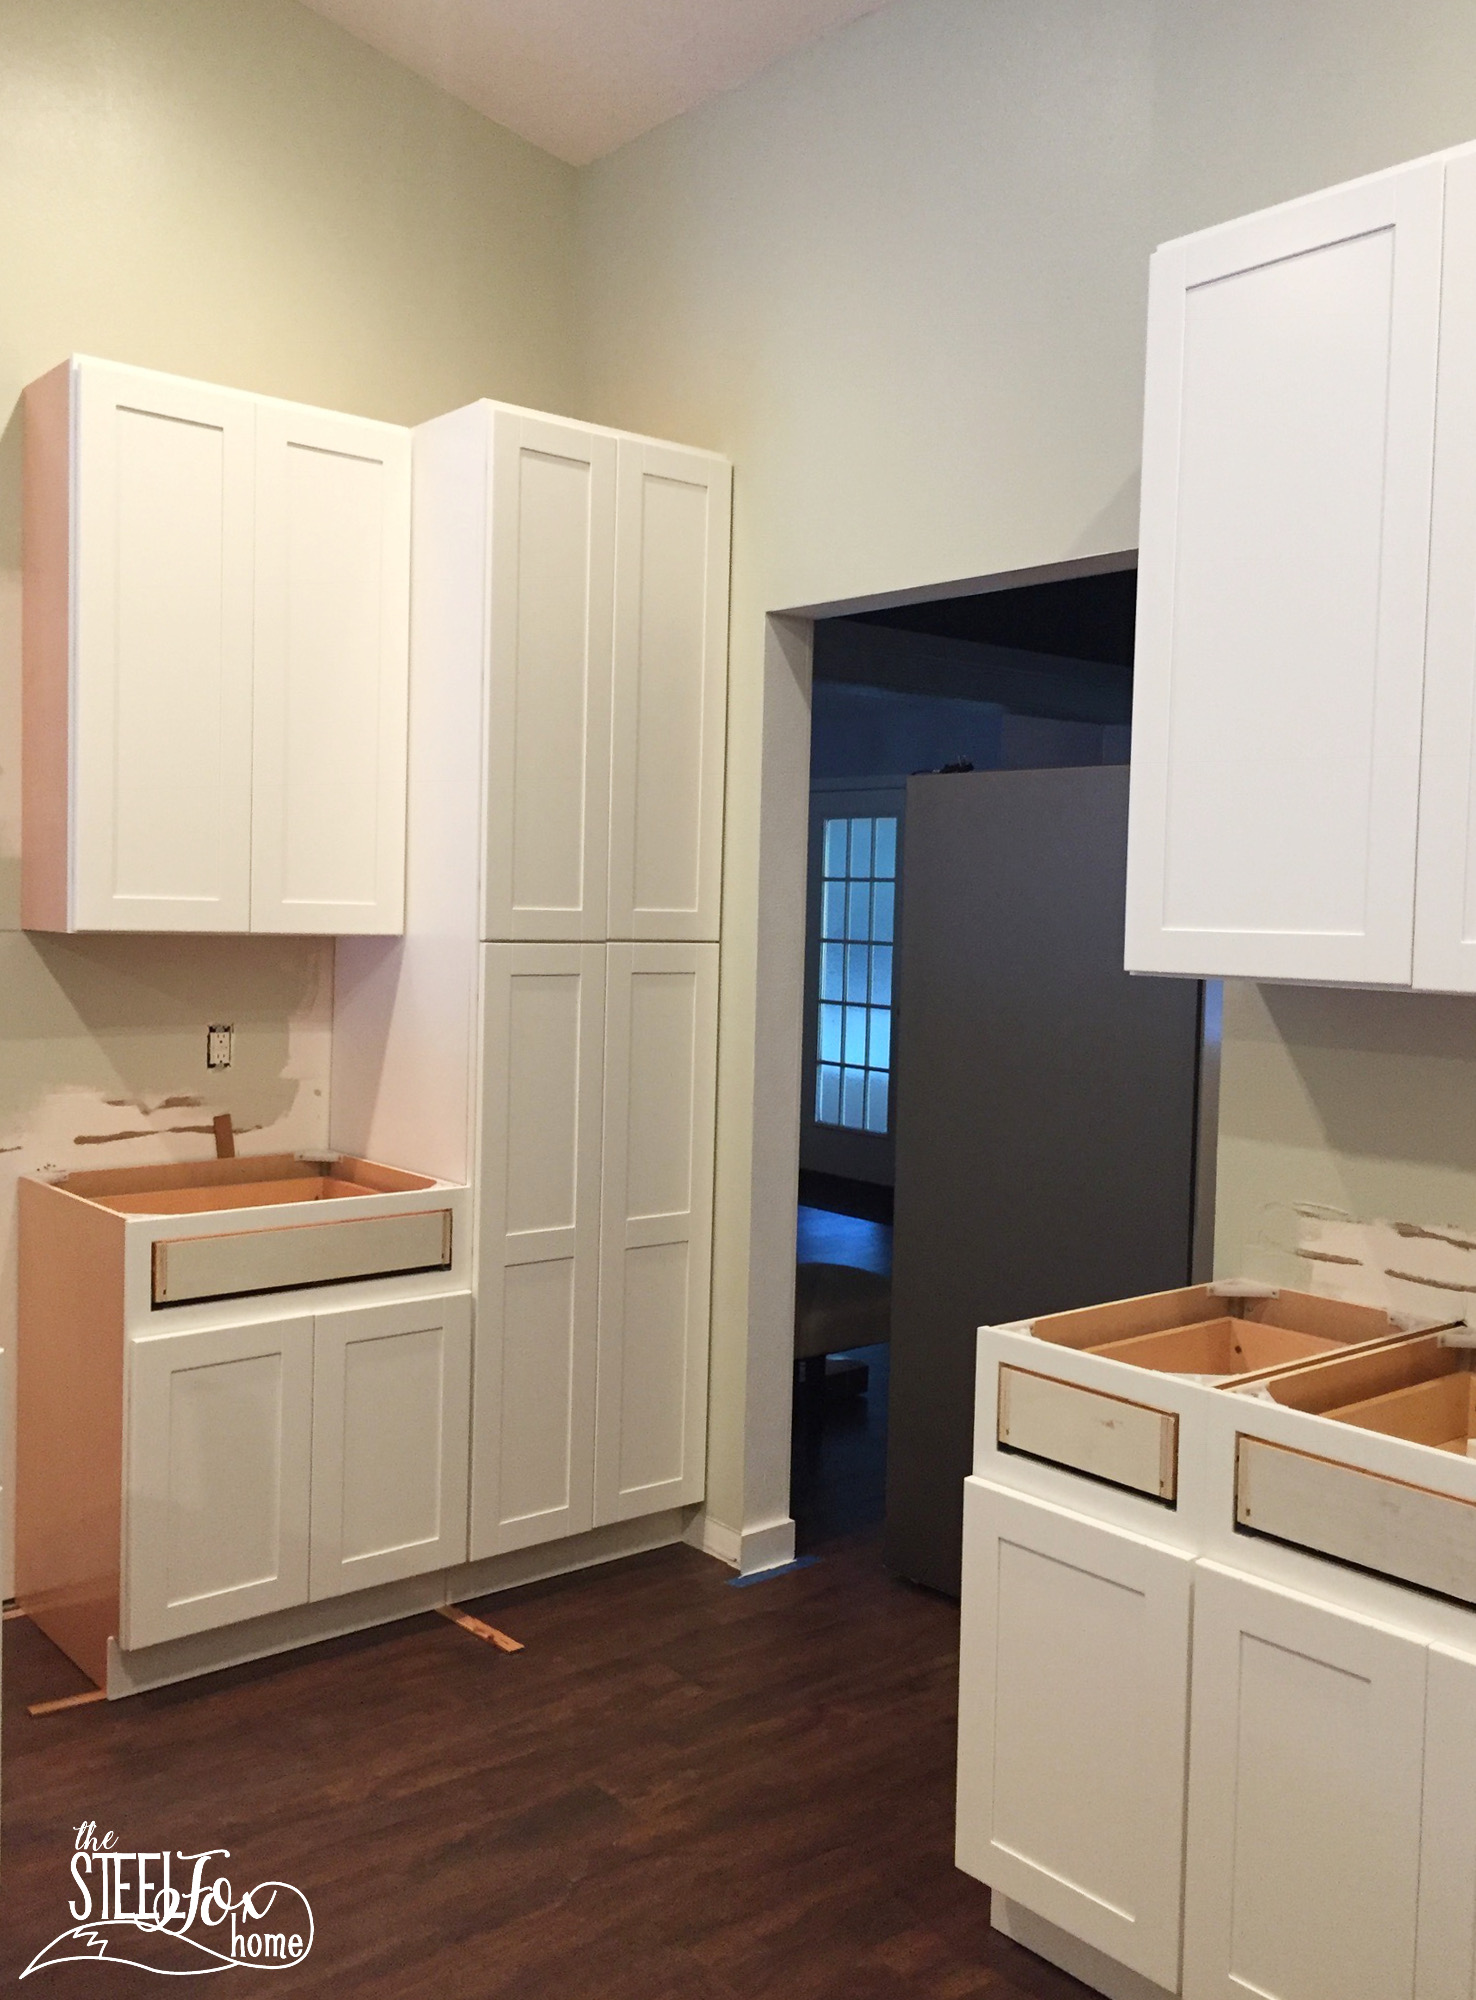 Our Long Awaited Kitchen Cabinet Install Day – The Steel Fox Home